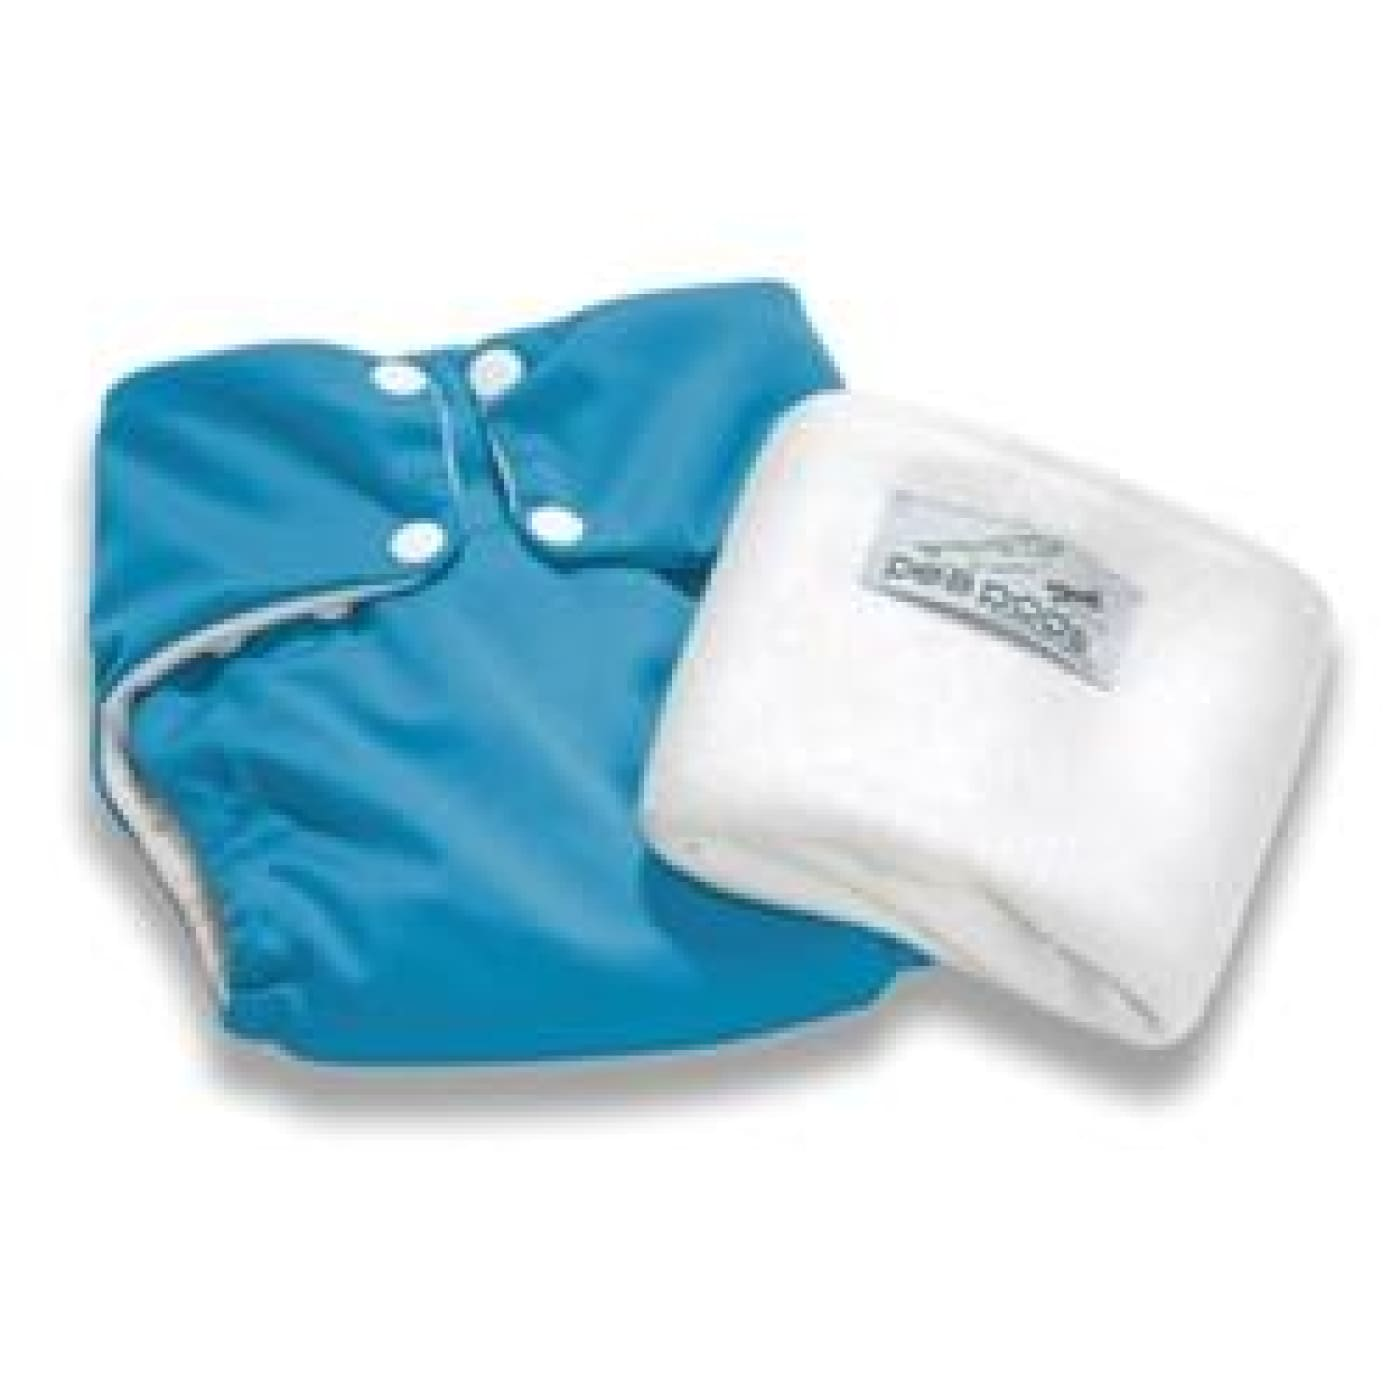 Pea Pods One Size Fits All Nappy - Aqua Blue - BATHTIME & CHANGING - NAPPIES/WIPES/ACC ECO RANGE